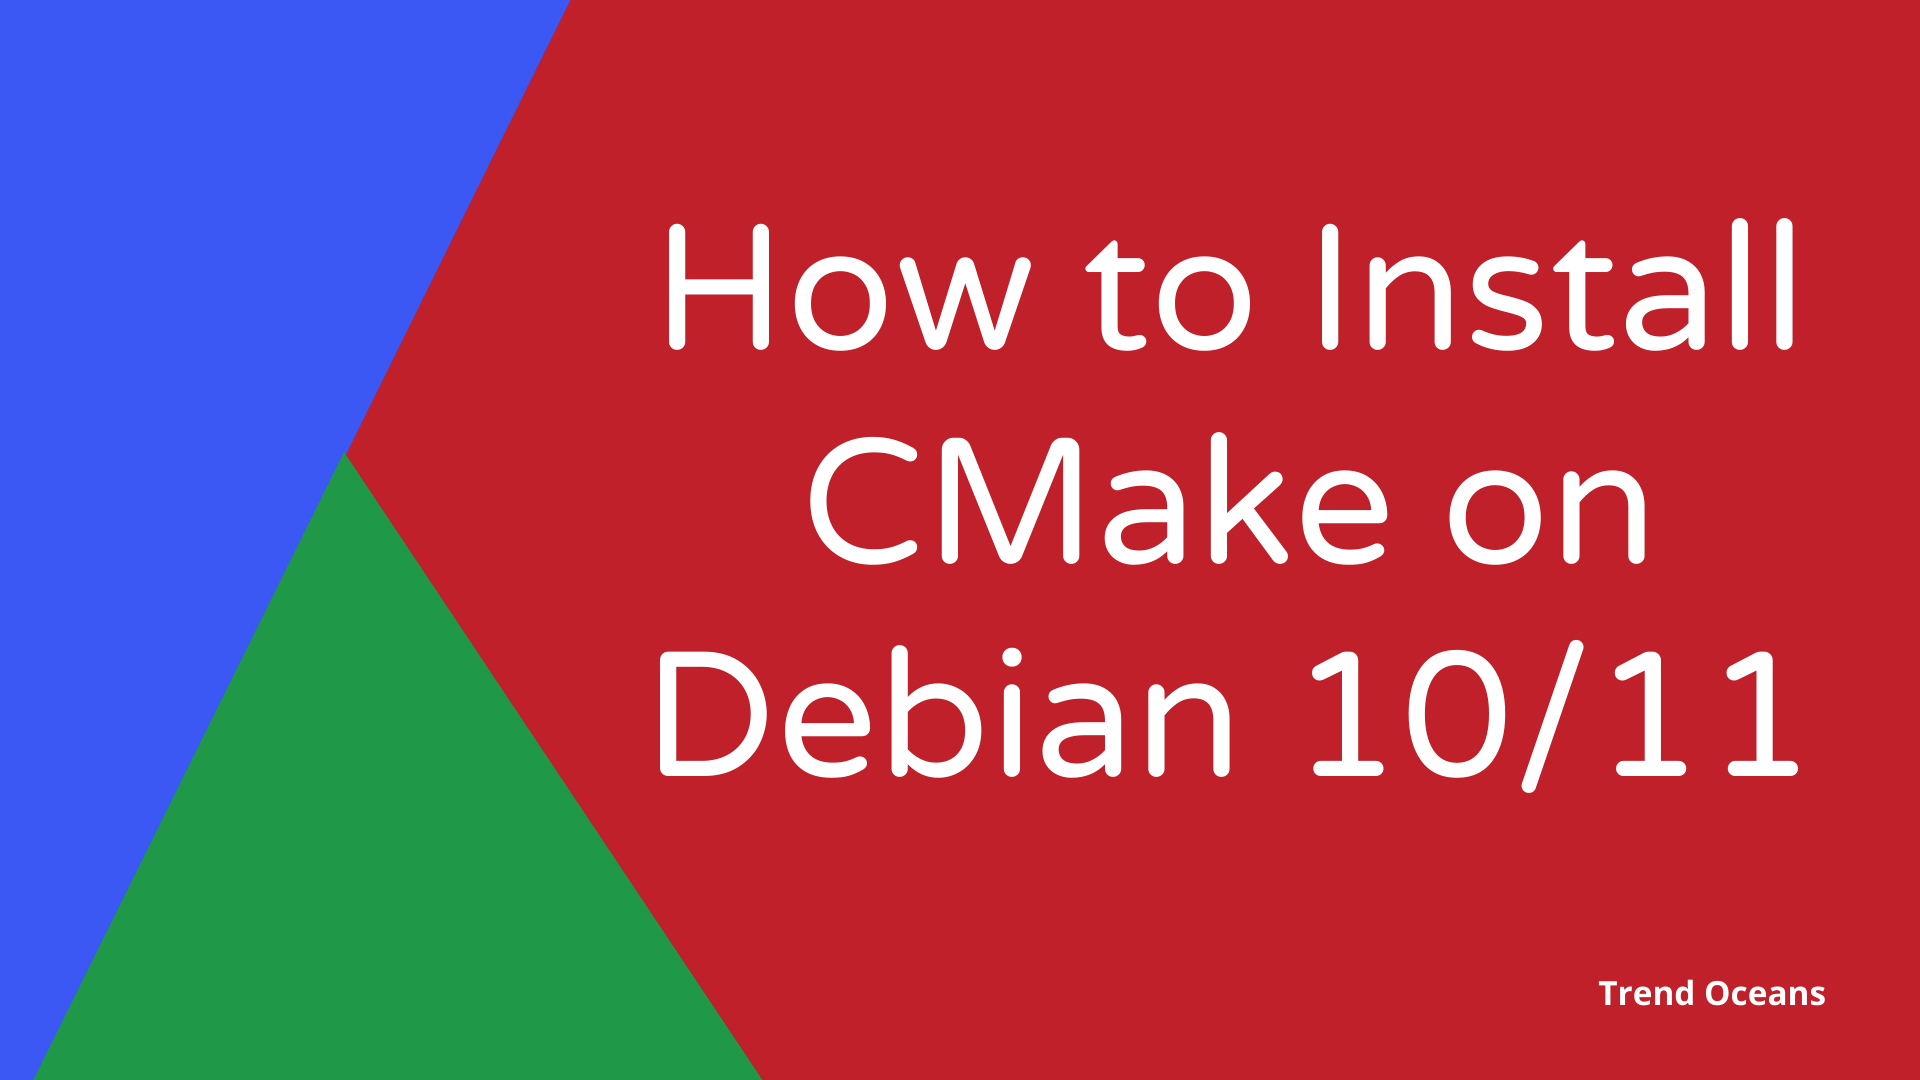 How to Install CMake on Debian 10_11